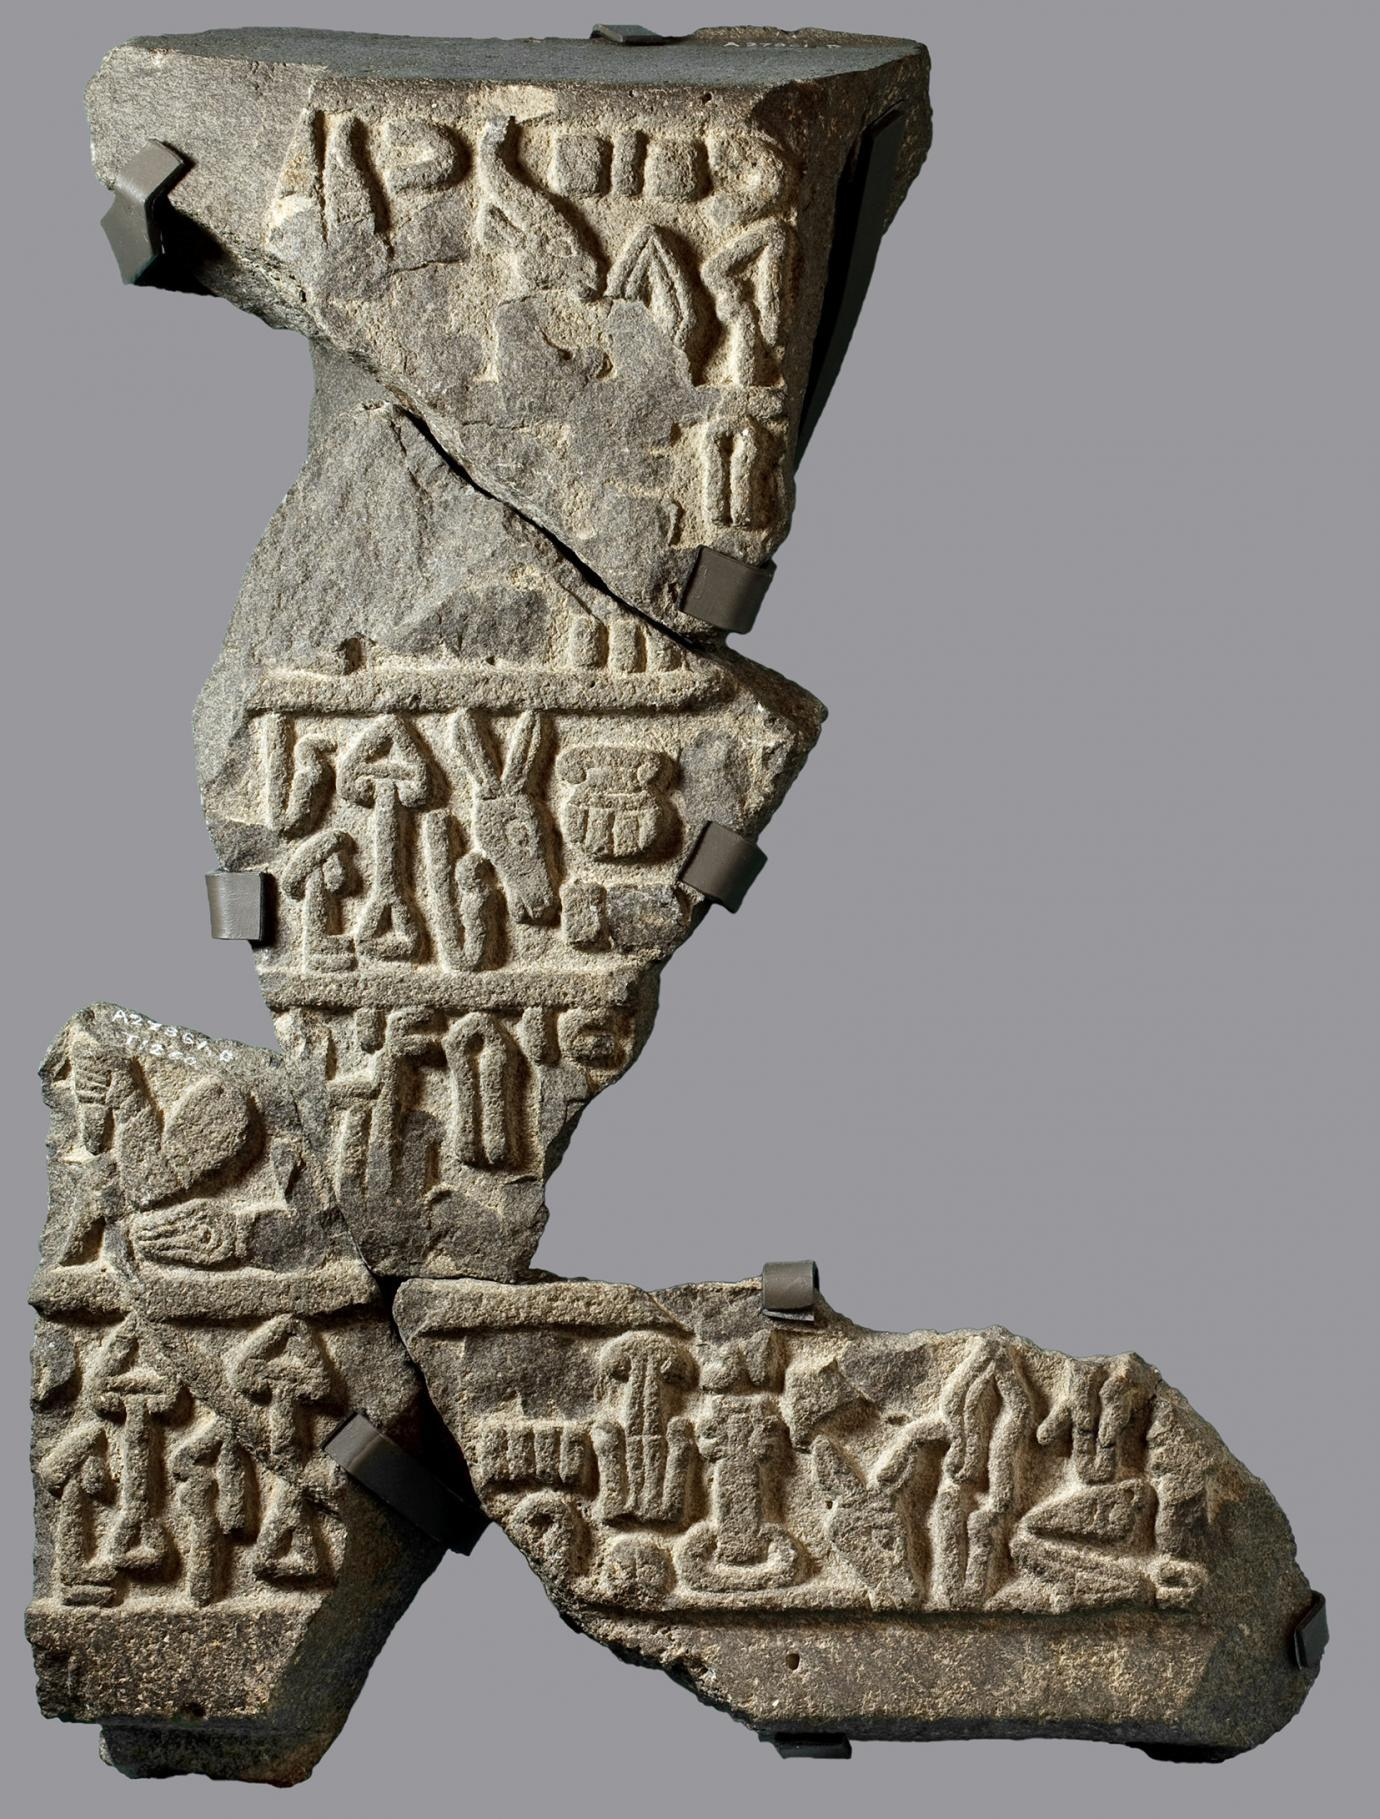 Example of the Luwian language, uncovered from a nearby dig. (Image: Oriental Institute)